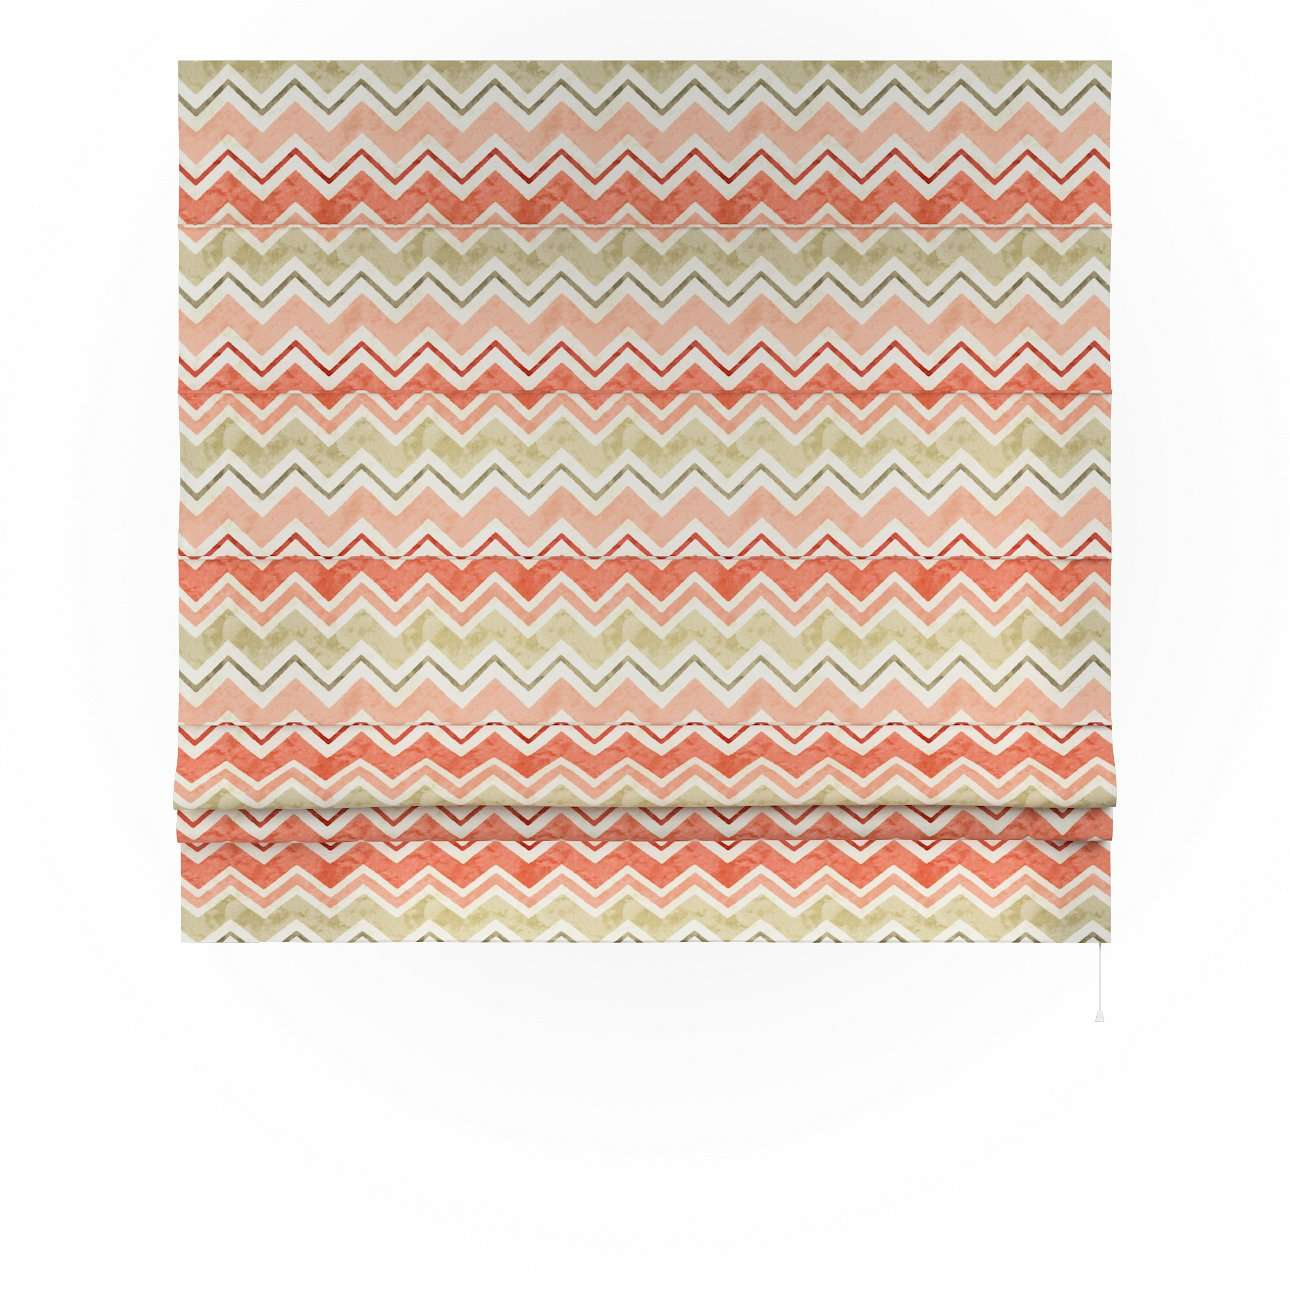 Padva roman blind  in collection Acapulco, fabric: 141-40